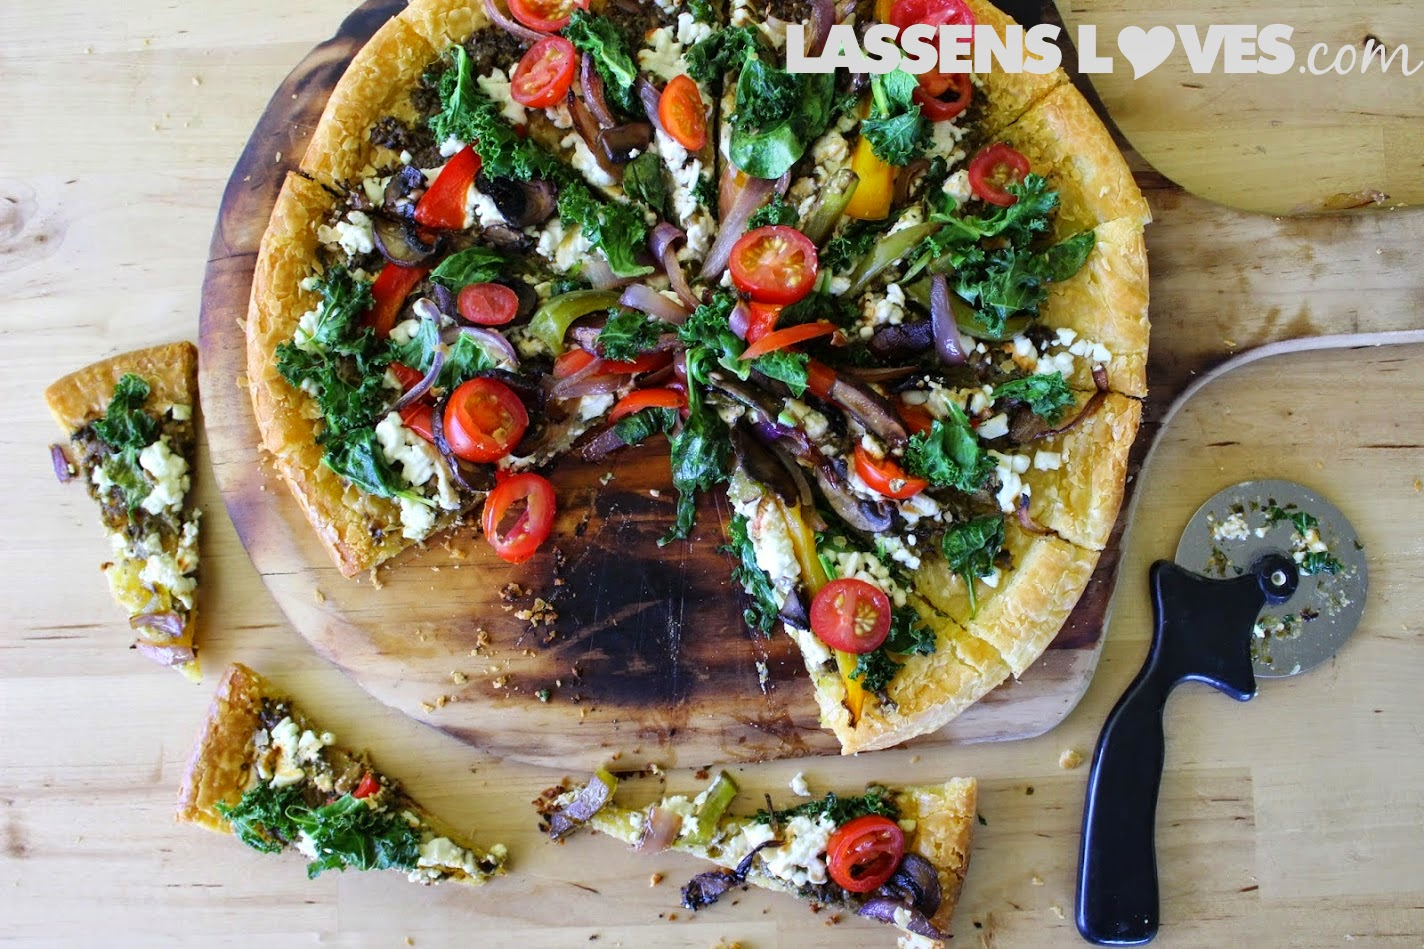 pesto+pizza, guilt+free+pizza, veggie+pizza, gluten+free+pizza